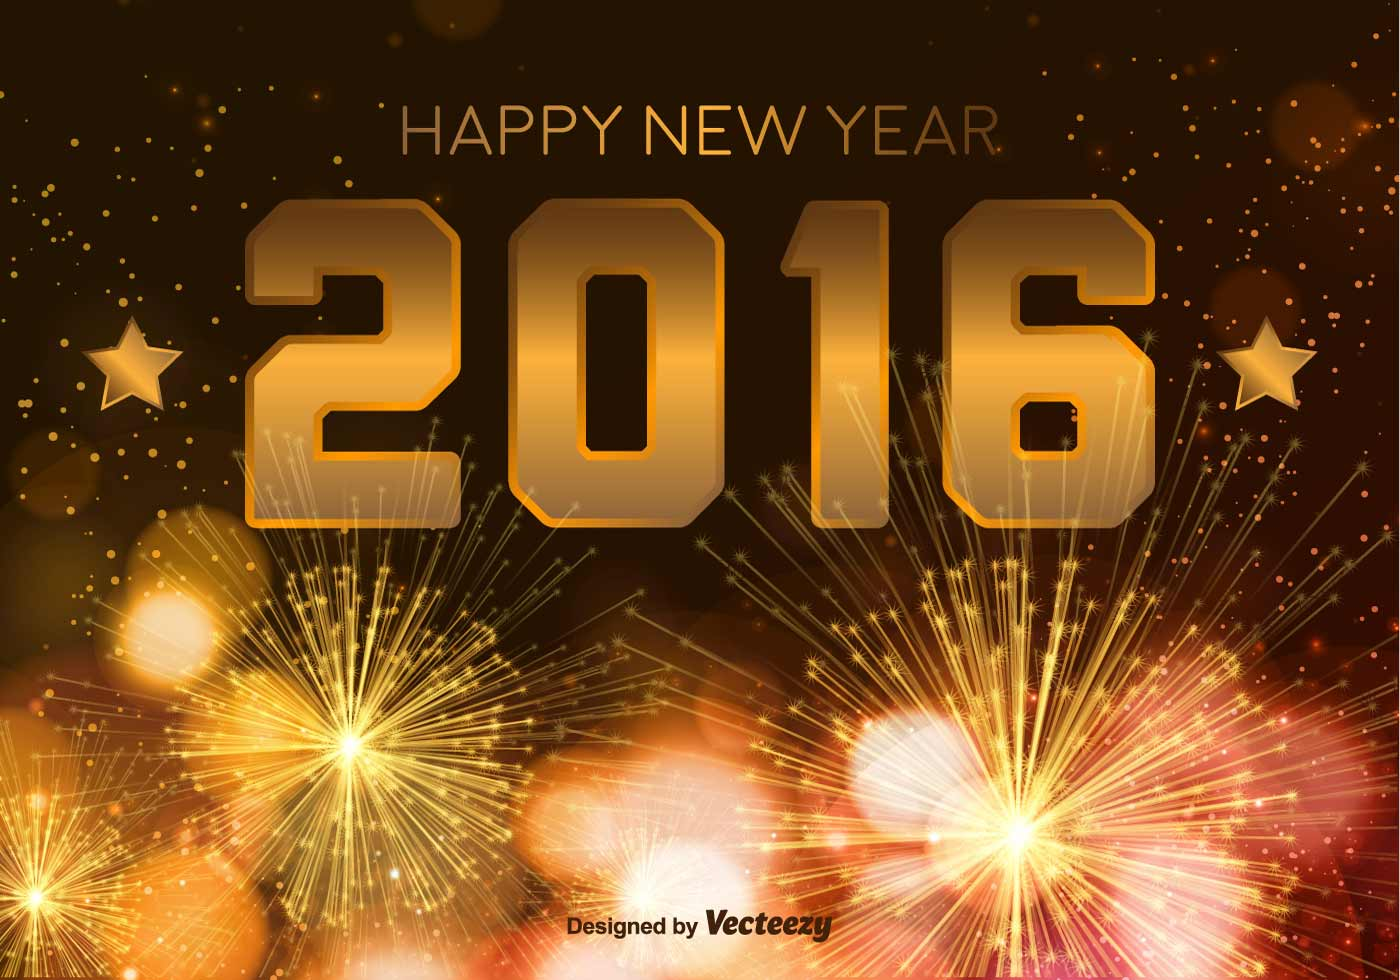 Wallpaper download new year 2016 - New Year 2016 Wallpaper We Need Fun